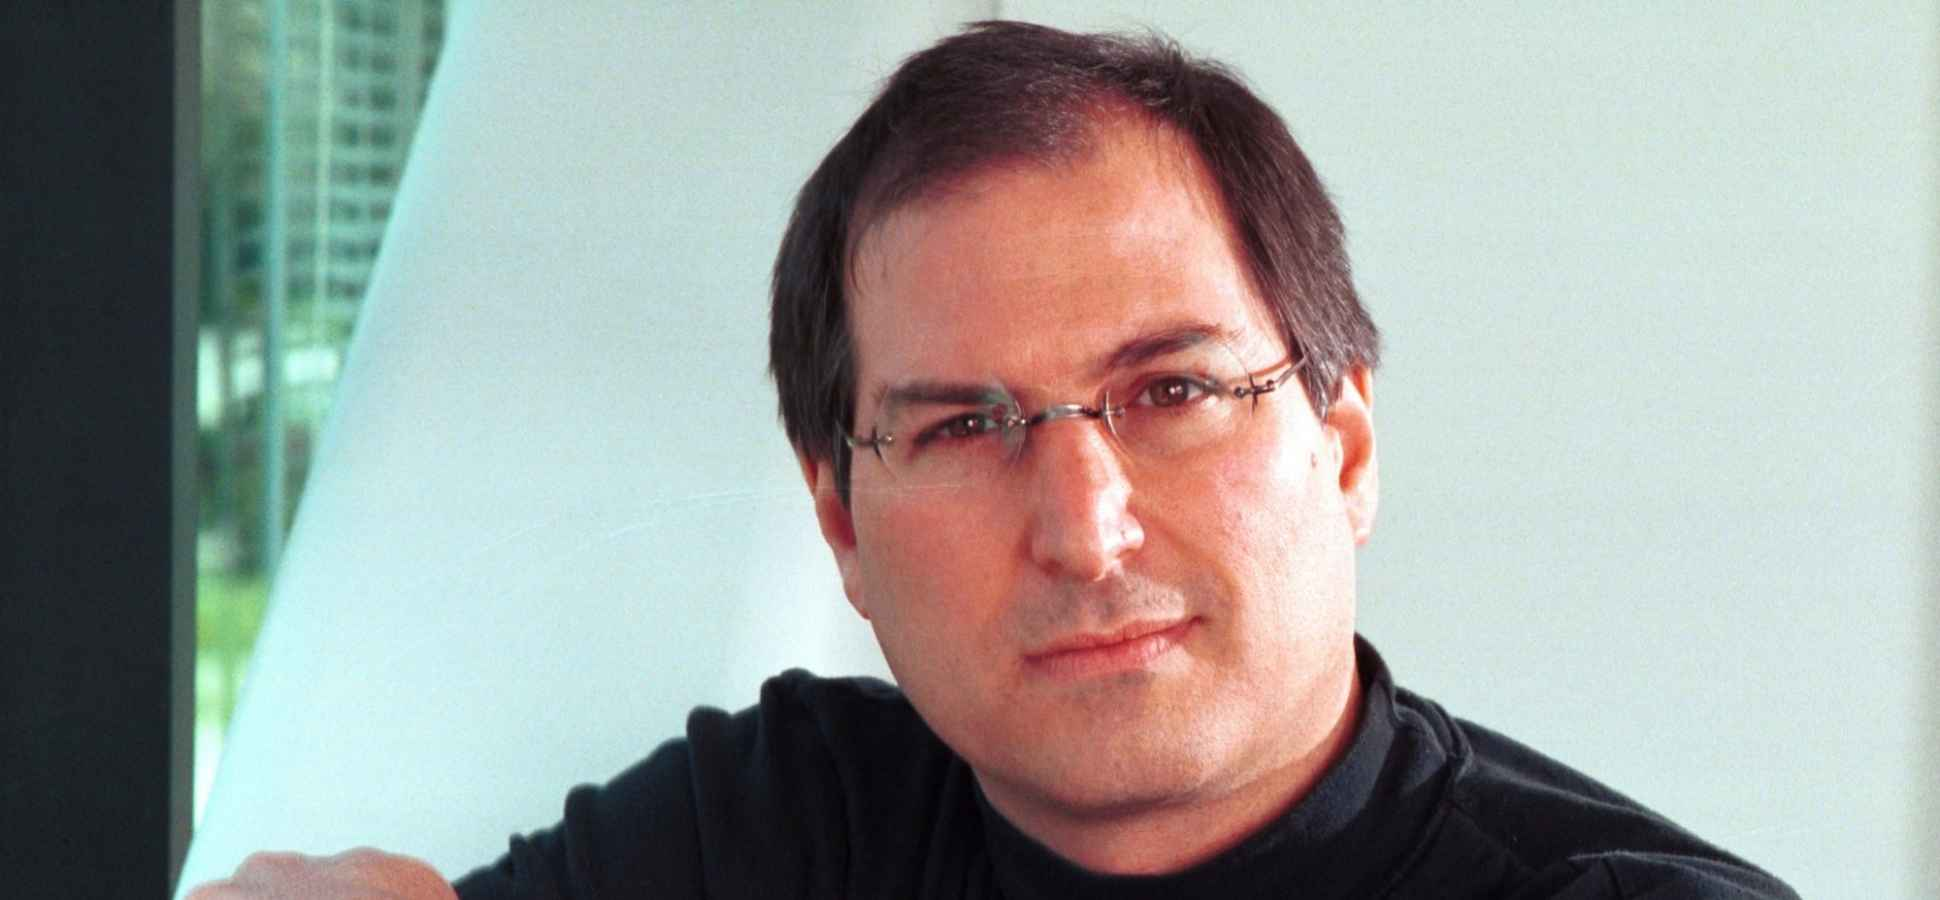 Steve Jobs Used this Insanely Simple Strategy to Get What He Wanted (and You Can Too) | Inc.com